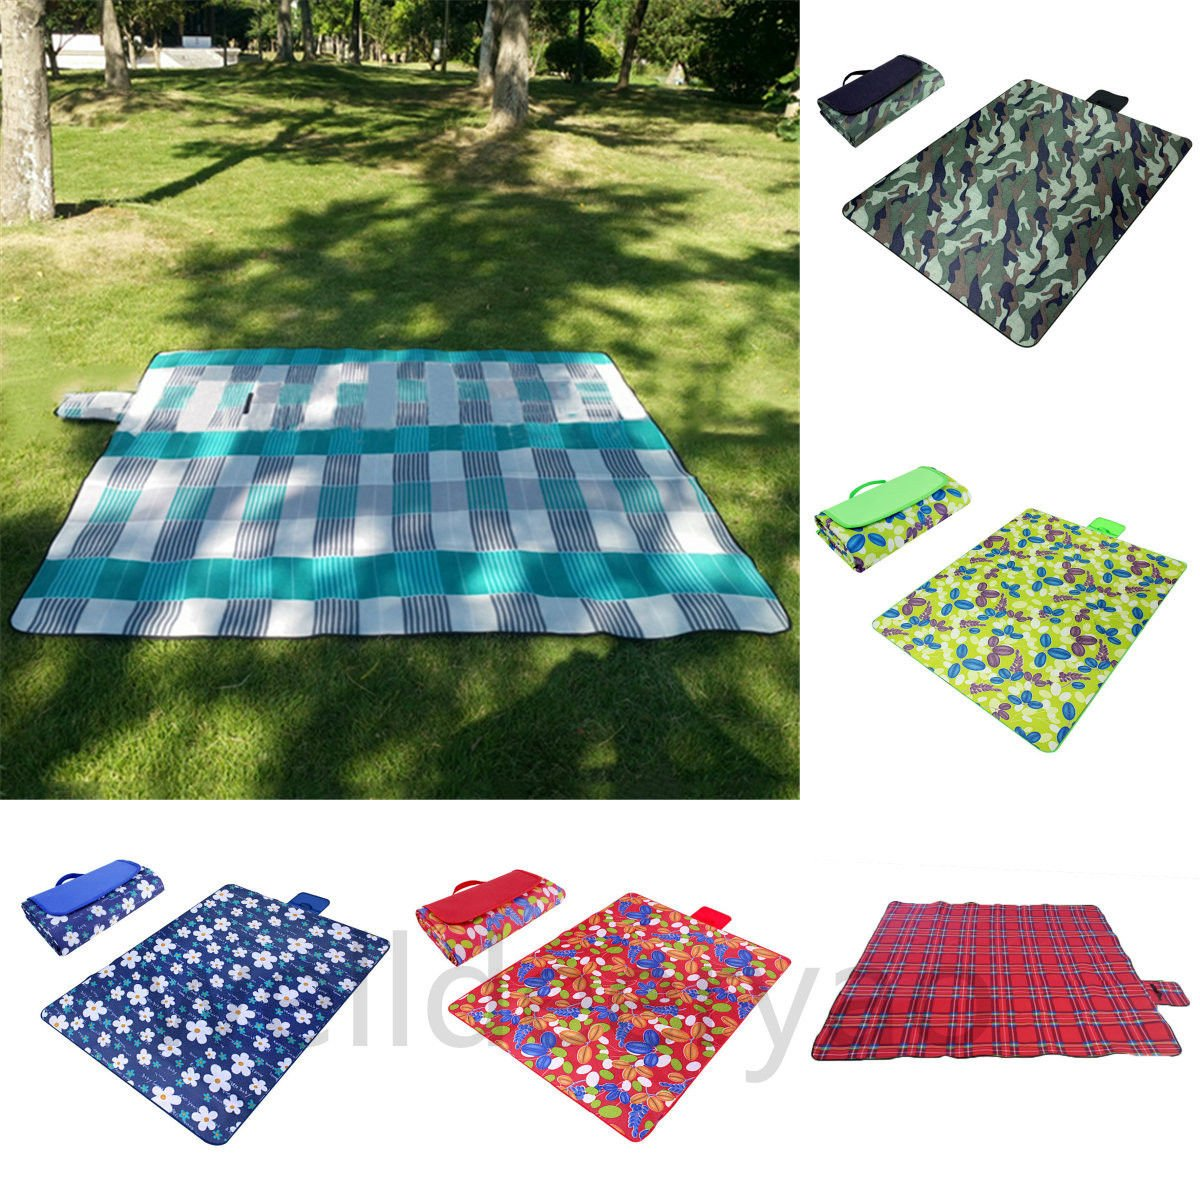 Black & Grass Paided Portable Picnic Blanket Waterproof Beach Mat Outdoor Camping Moistureproof Gift 200 200cm / 78.74 78.74in